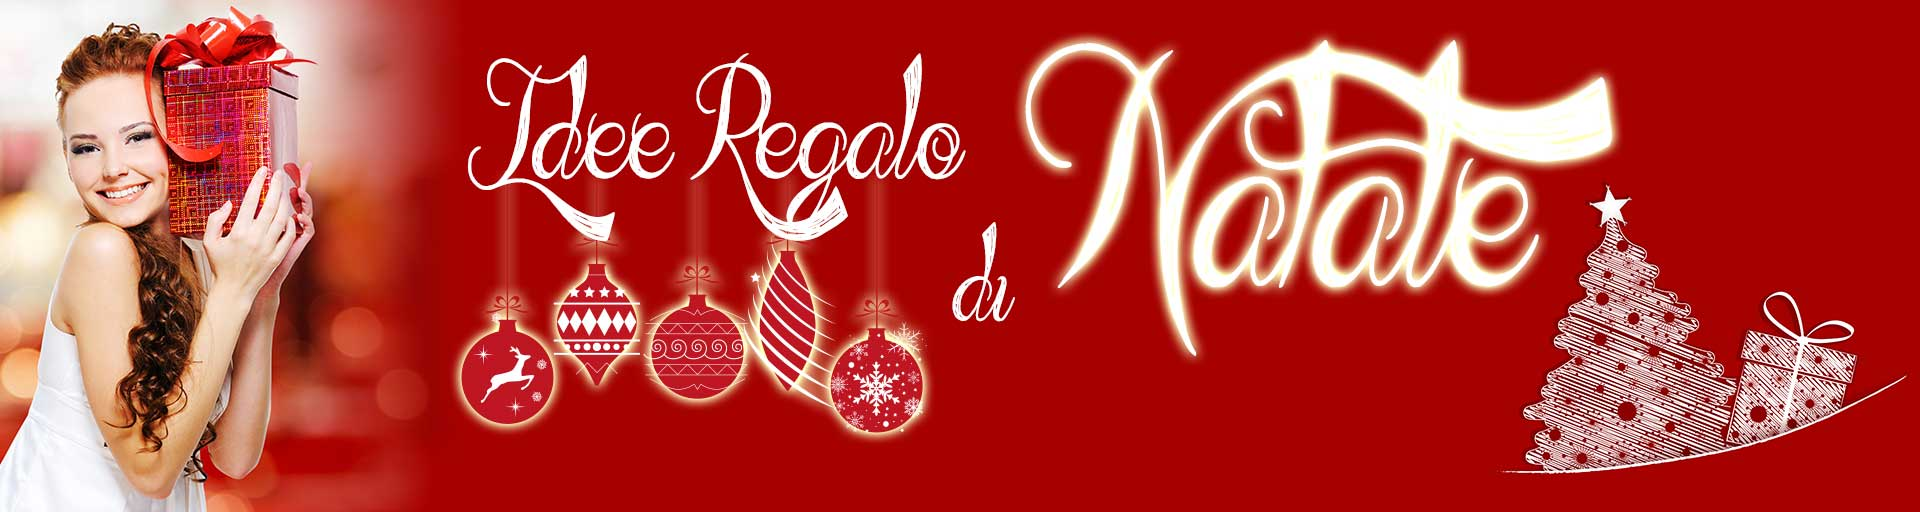 Idee regalo di natale fotomox for Regalo di natale originale